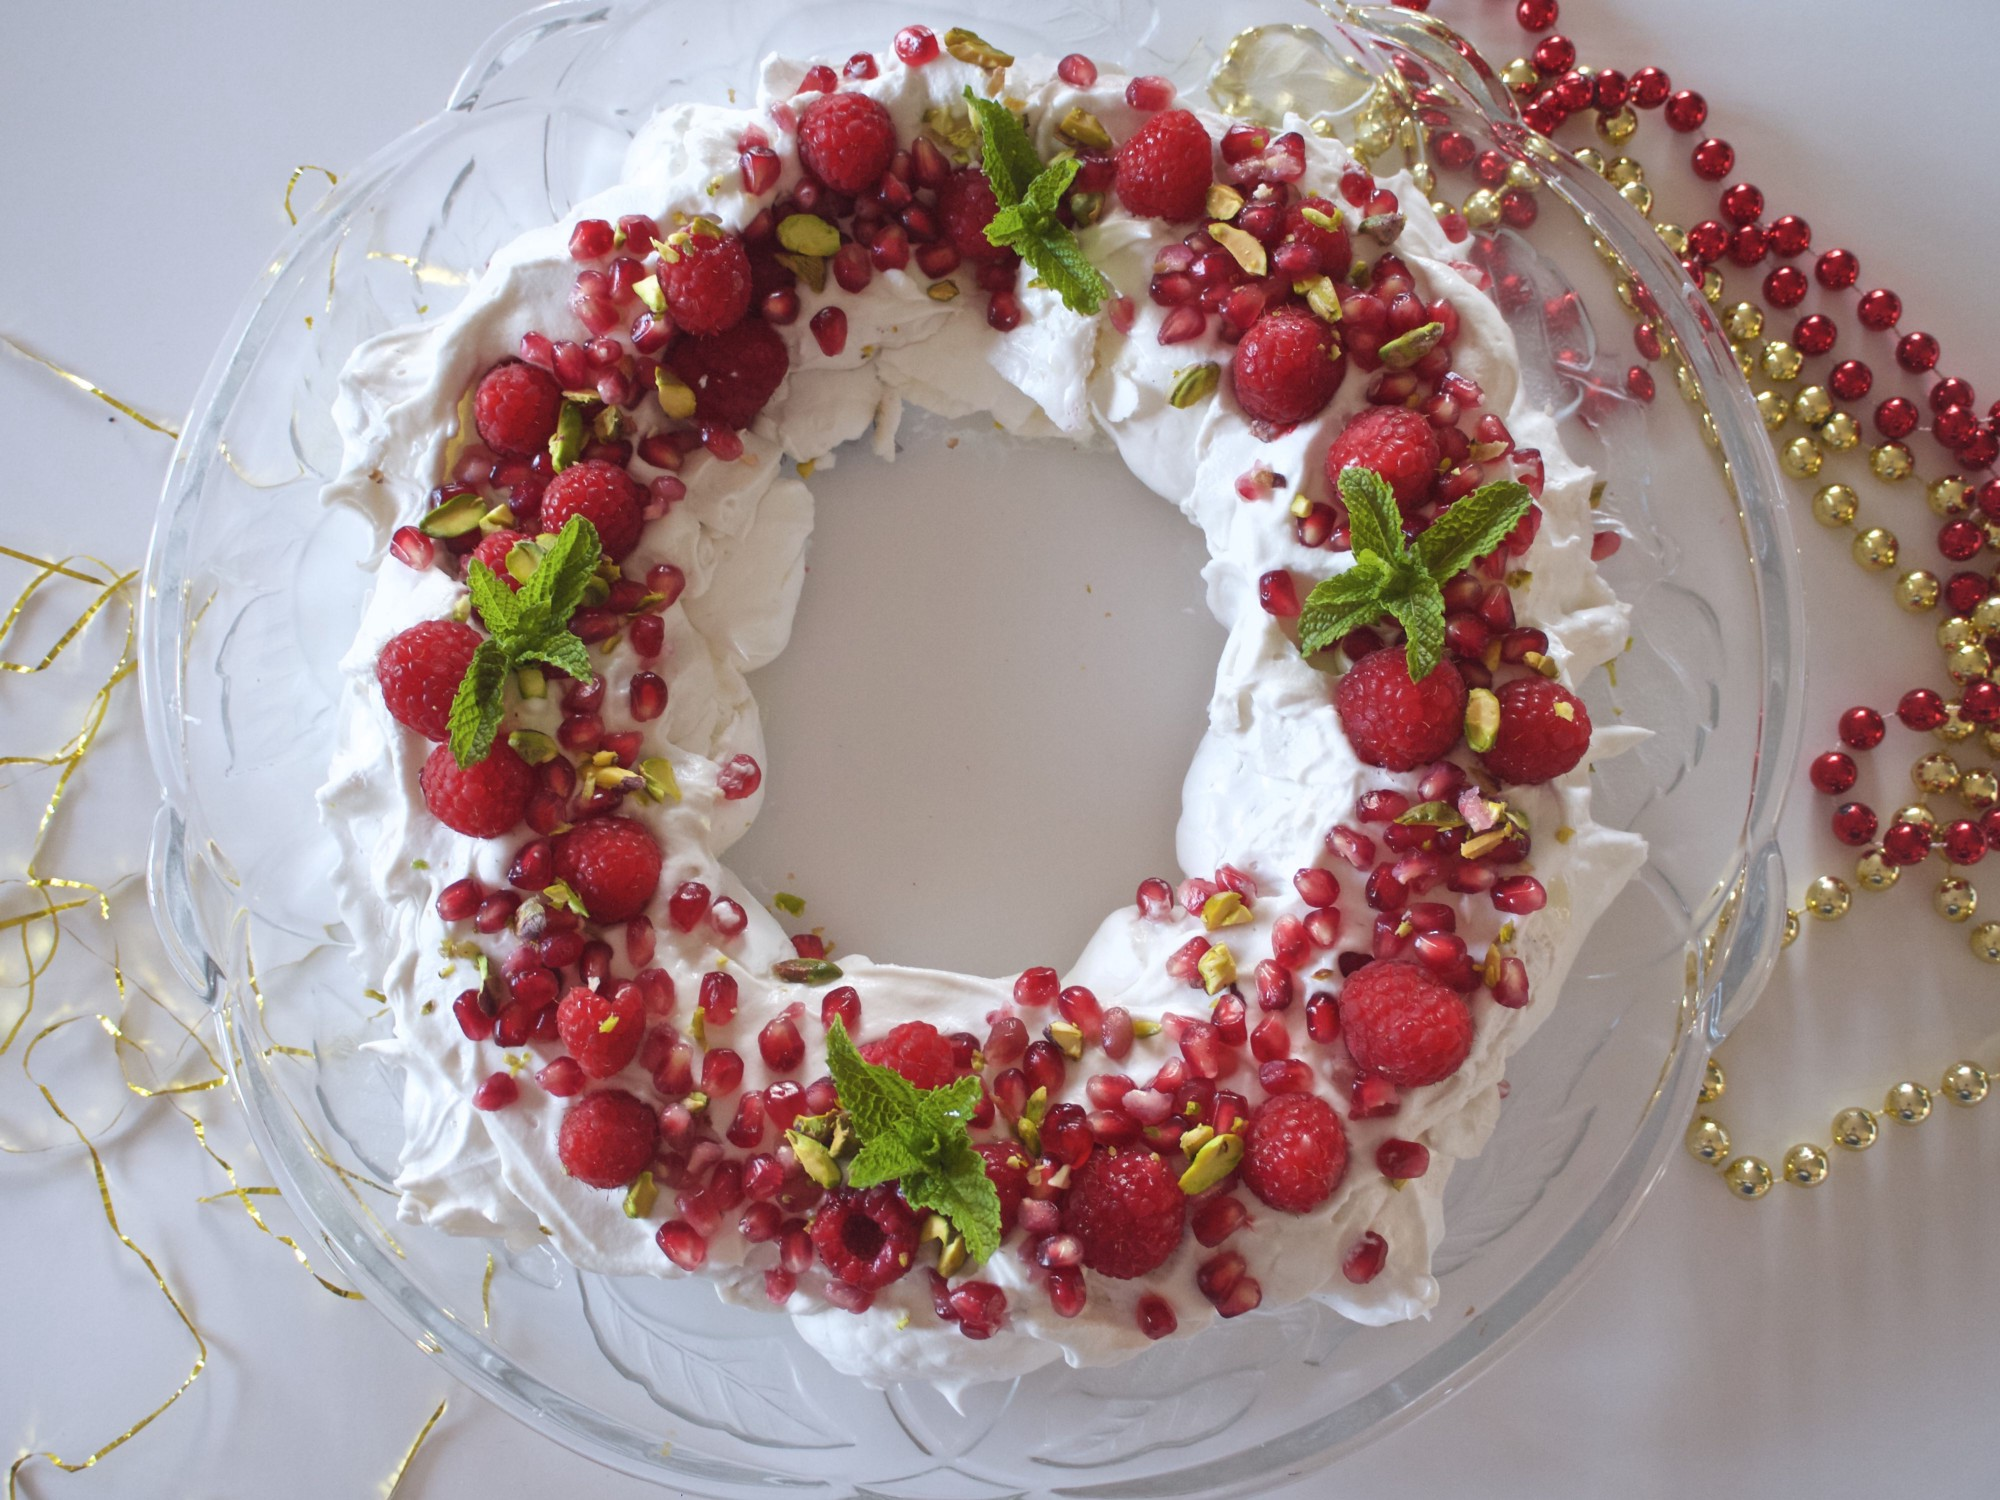 A wreath made of stiff sweet white vegan meringue sits on a plate and is decorated with red berries and leaves